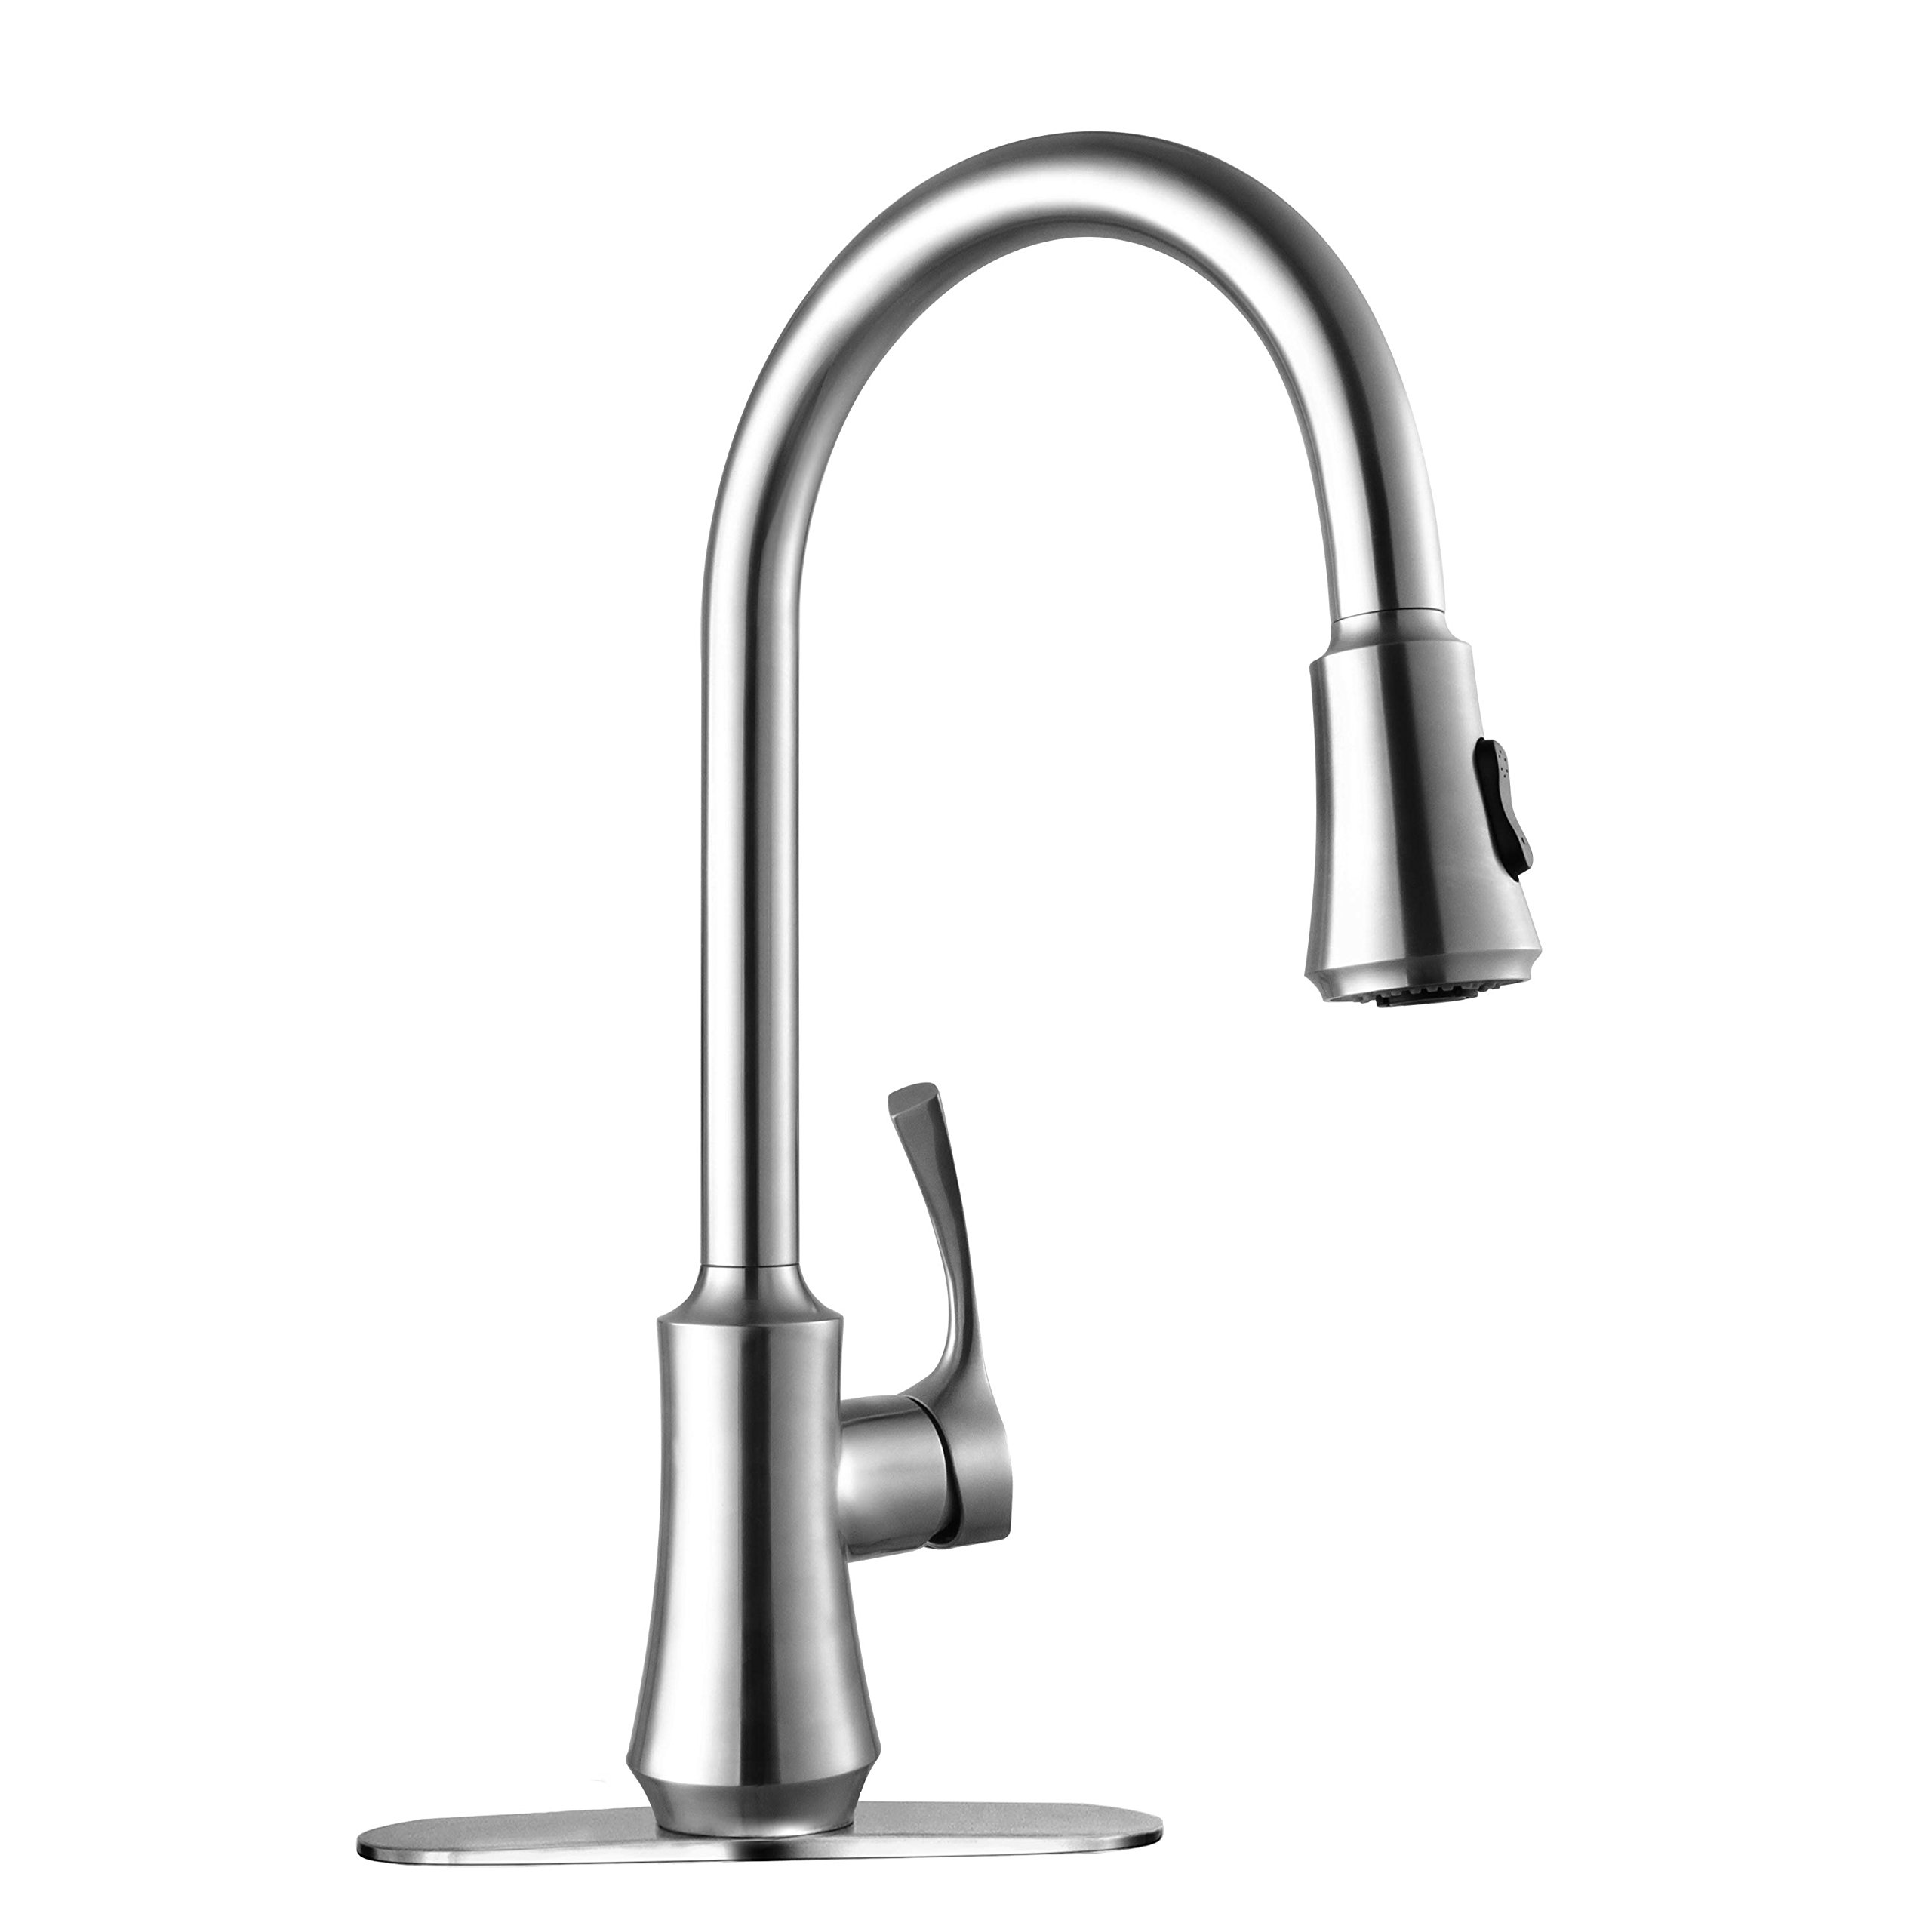 banbury house reviews amazon kitchen blog rated moen in fixtures top faucets customer amp best of helpful bathroom inspirational harmony faucet